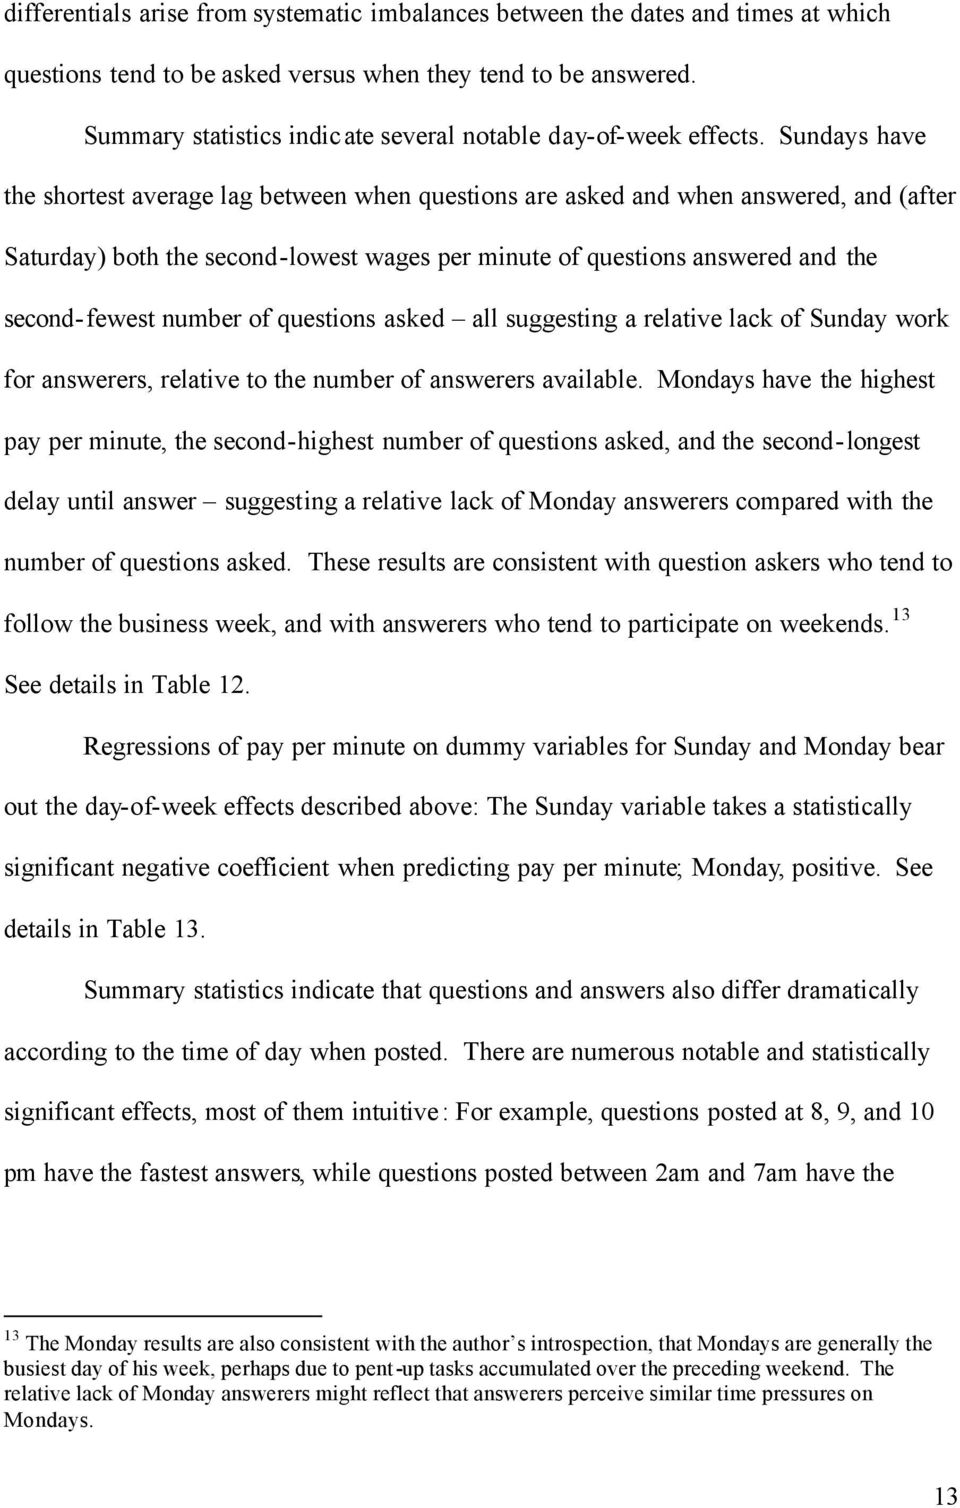 Sundays have the shortest average lag between when questions are asked and when answered, and (after Saturday) both the second-lowest wages per minute of questions answered and the second-fewest